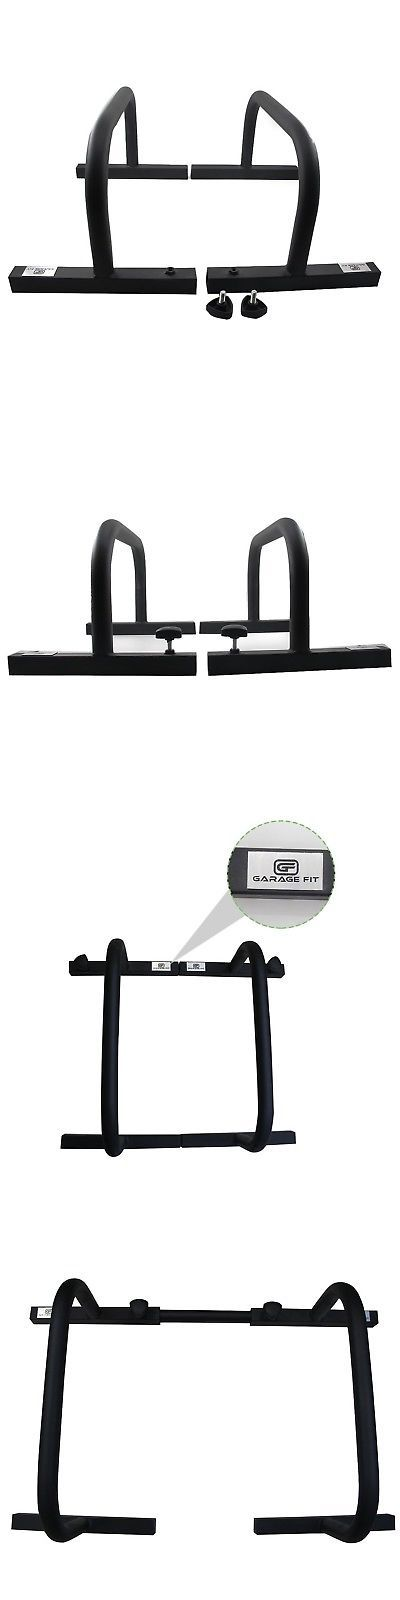 Push Up Stands 158925: Garage Fit Steel Parallettes, Push Up Bars, Dip Bars -> BUY IT NOW ONLY: $98.27 on eBay!